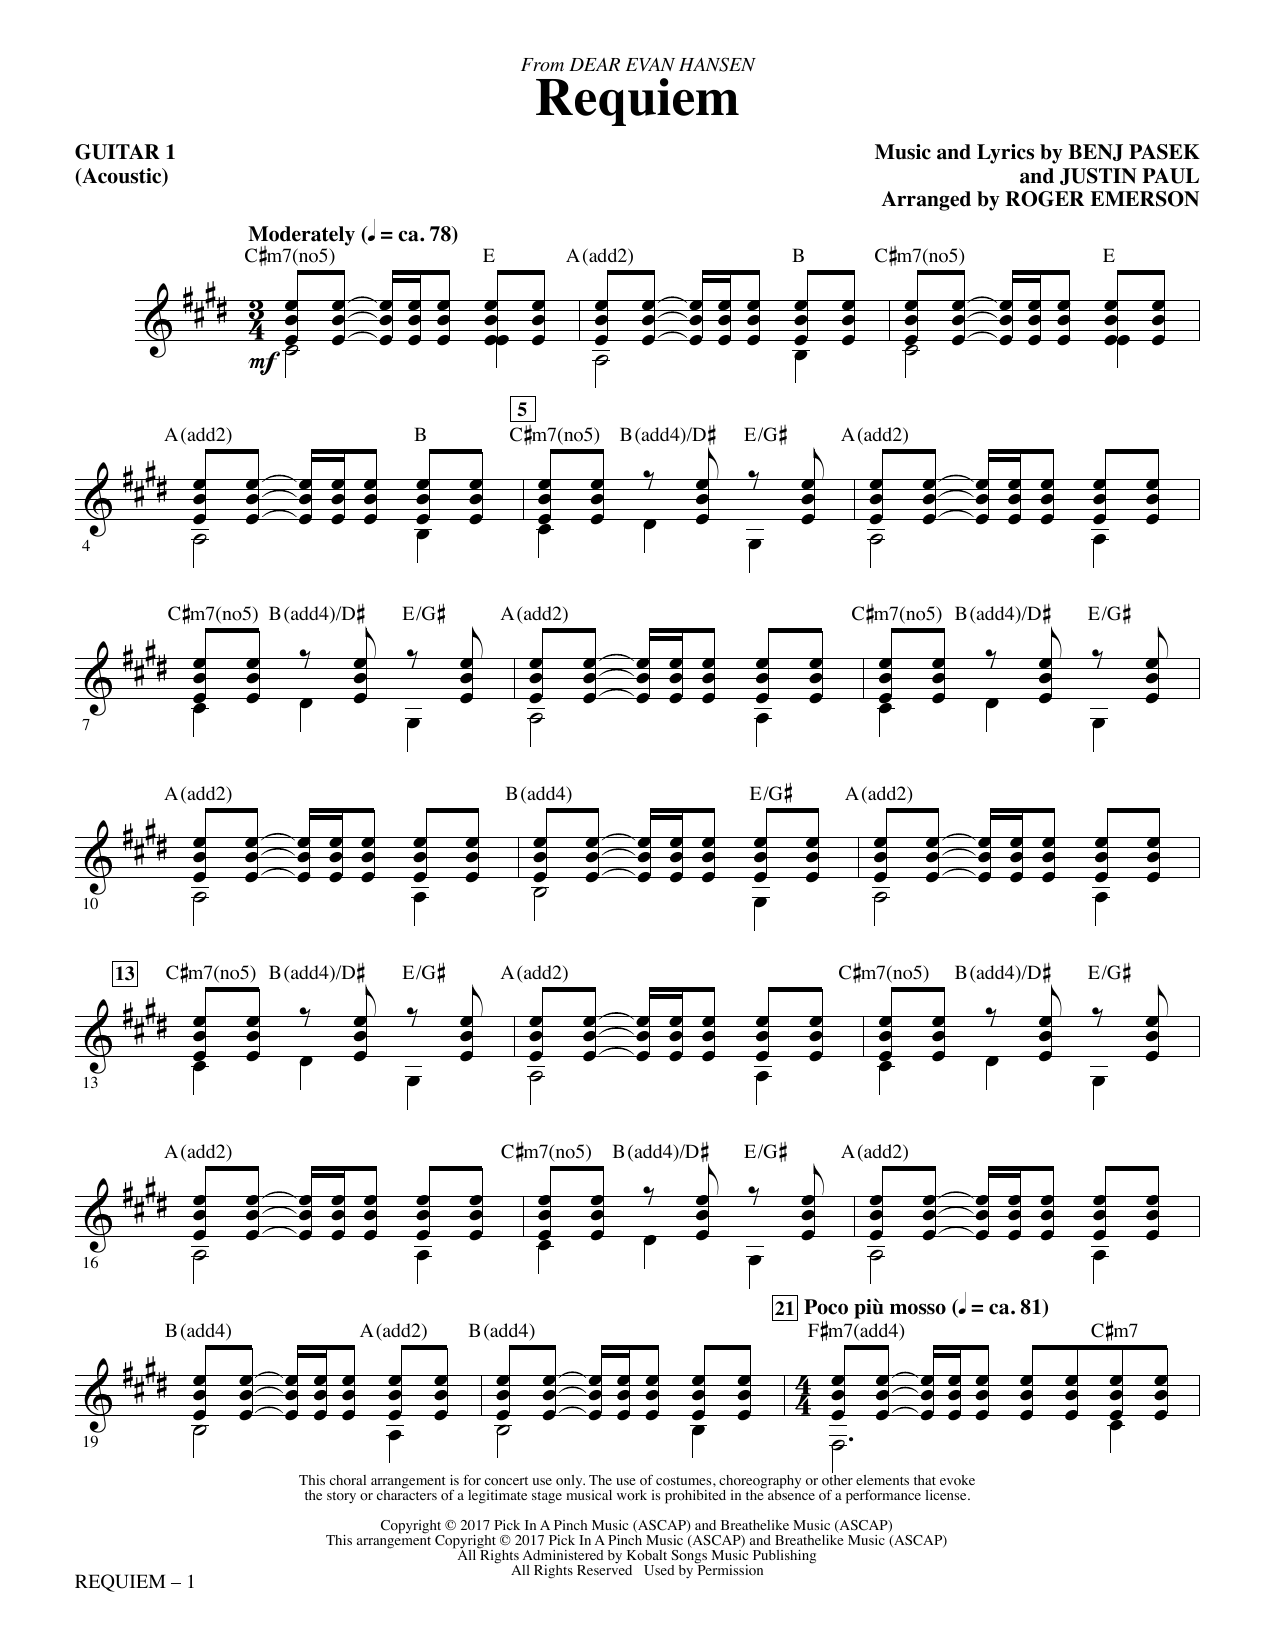 Pasek & Paul Requiem (from Dear Evan Hansen) (arr. Roger Emerson) - Guitar 1 sheet music notes and chords. Download Printable PDF.